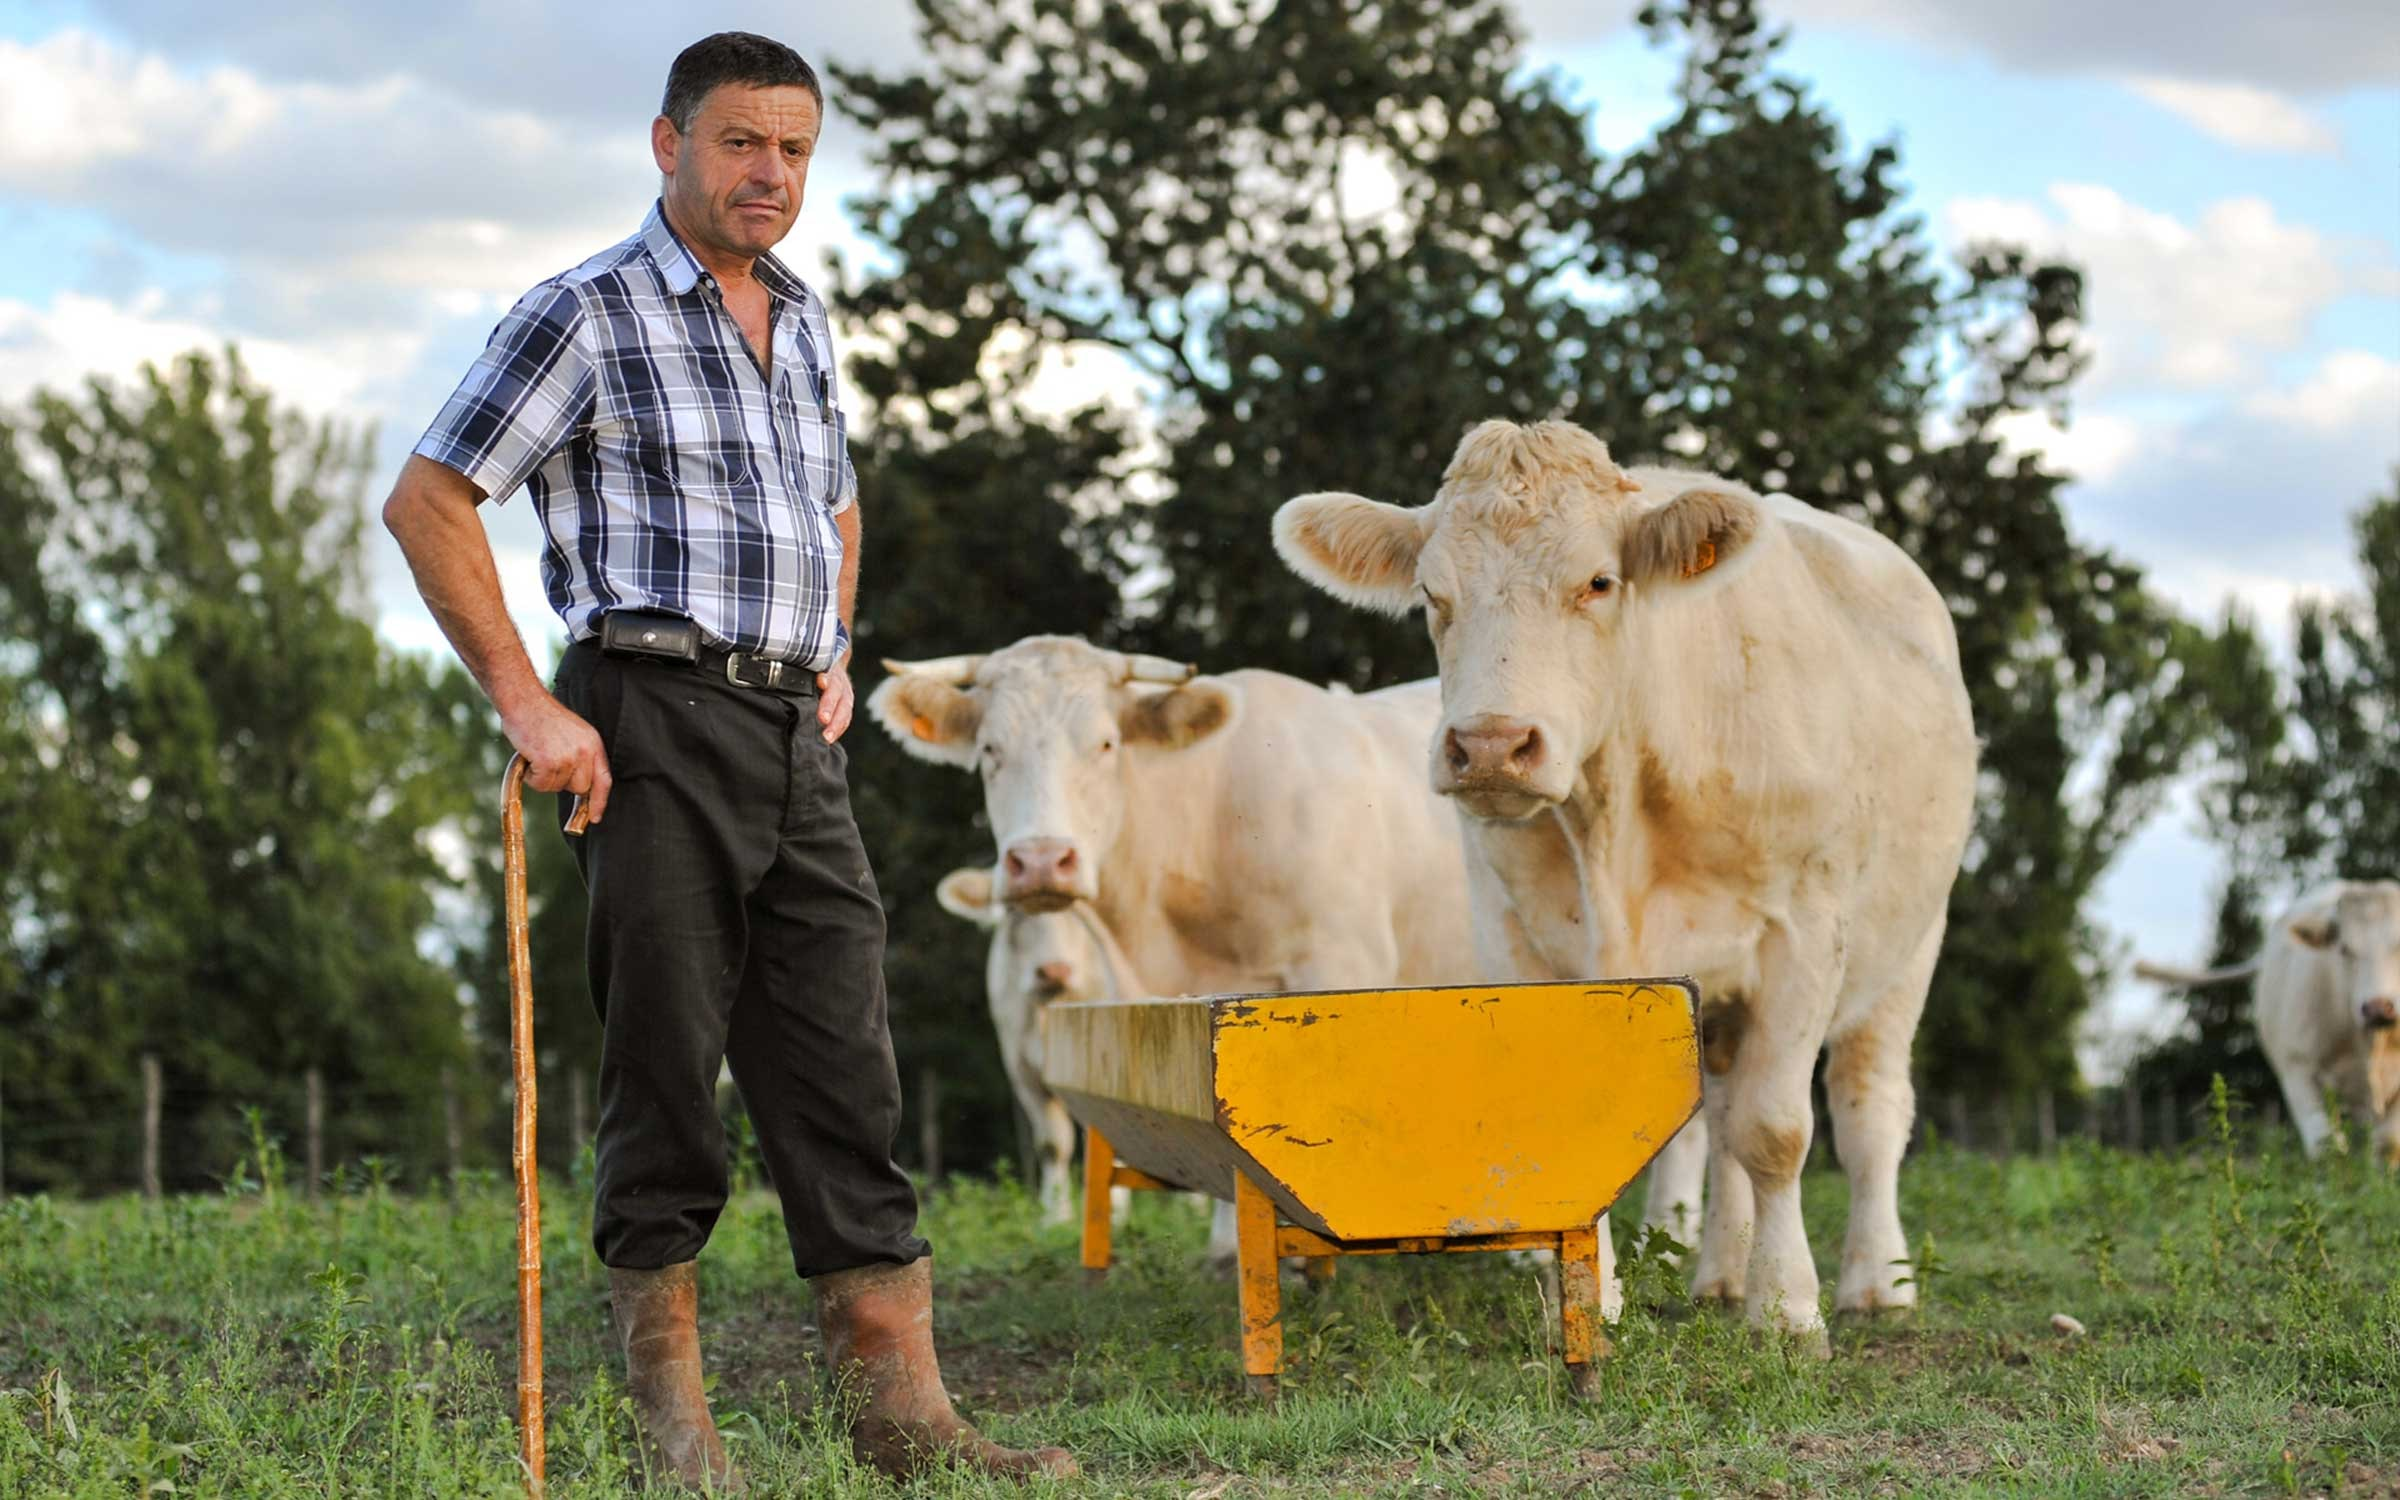 A farmer standing in a field next to his cows that are drinking water out of a yellow trough